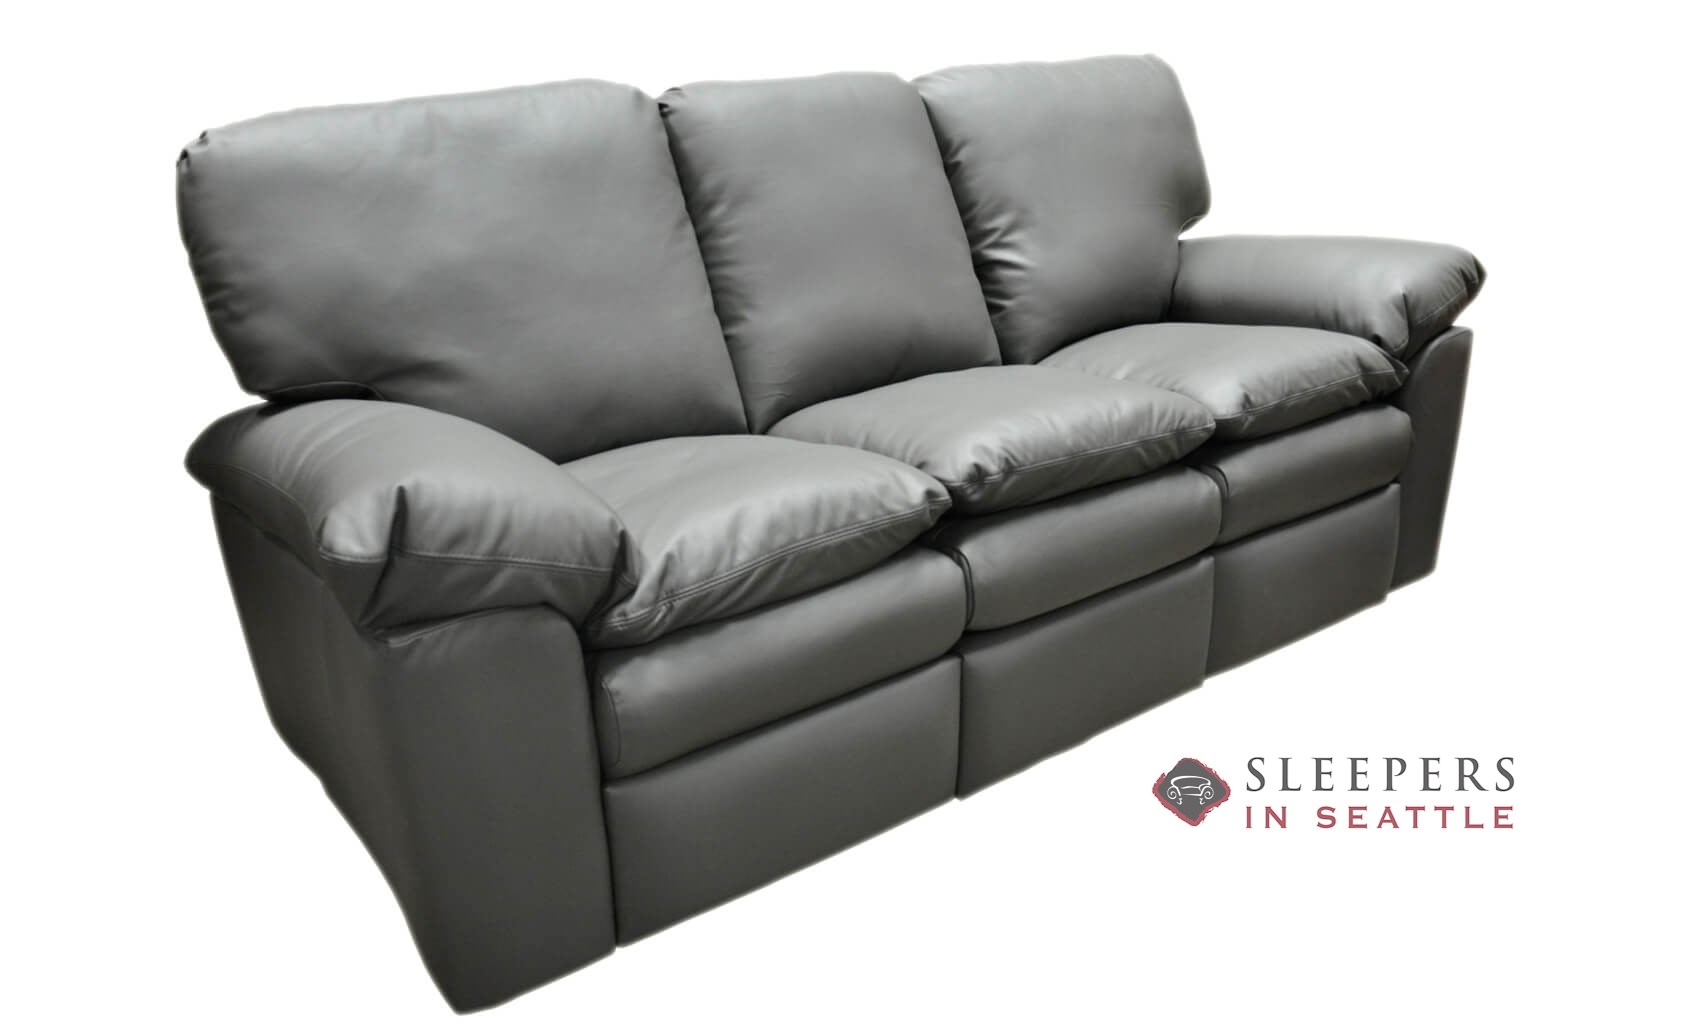 Customize And Personalize El Dorado By Omnia Full Leather Sofa By Omnia Full Size Sofa Bed Sleepersinseattle Com